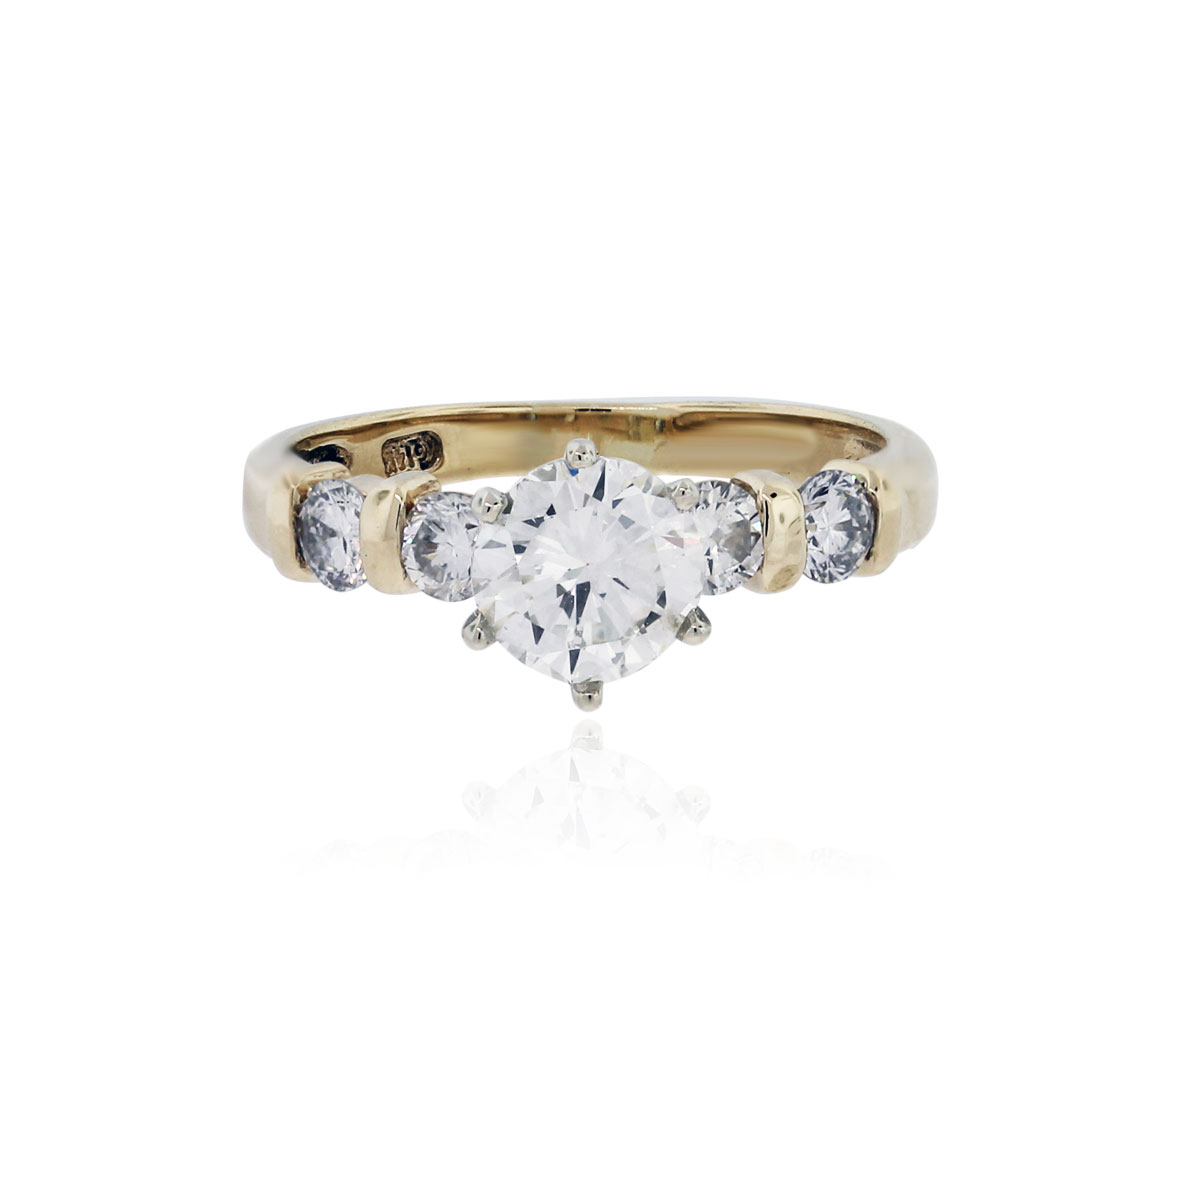 You are viewing this 1.31ctw Diamond 14k Yellow Gold Engagement Ring!